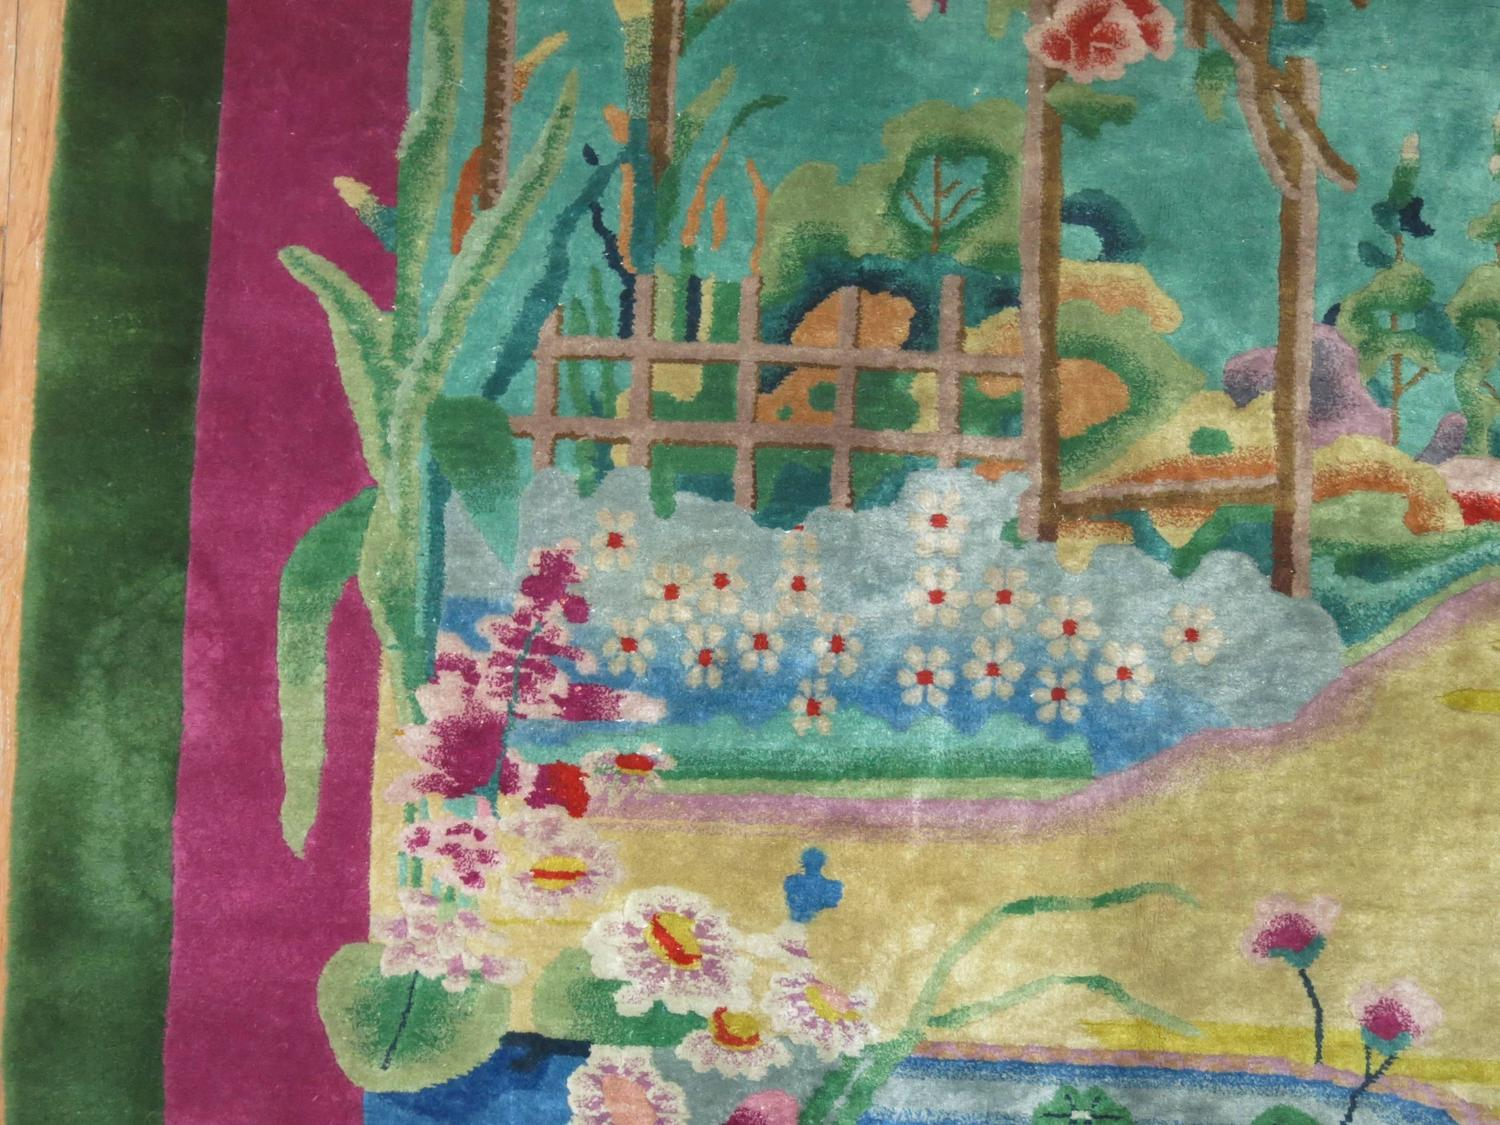 Antique Chinese Art Deco Rug With Landscape Scenery For